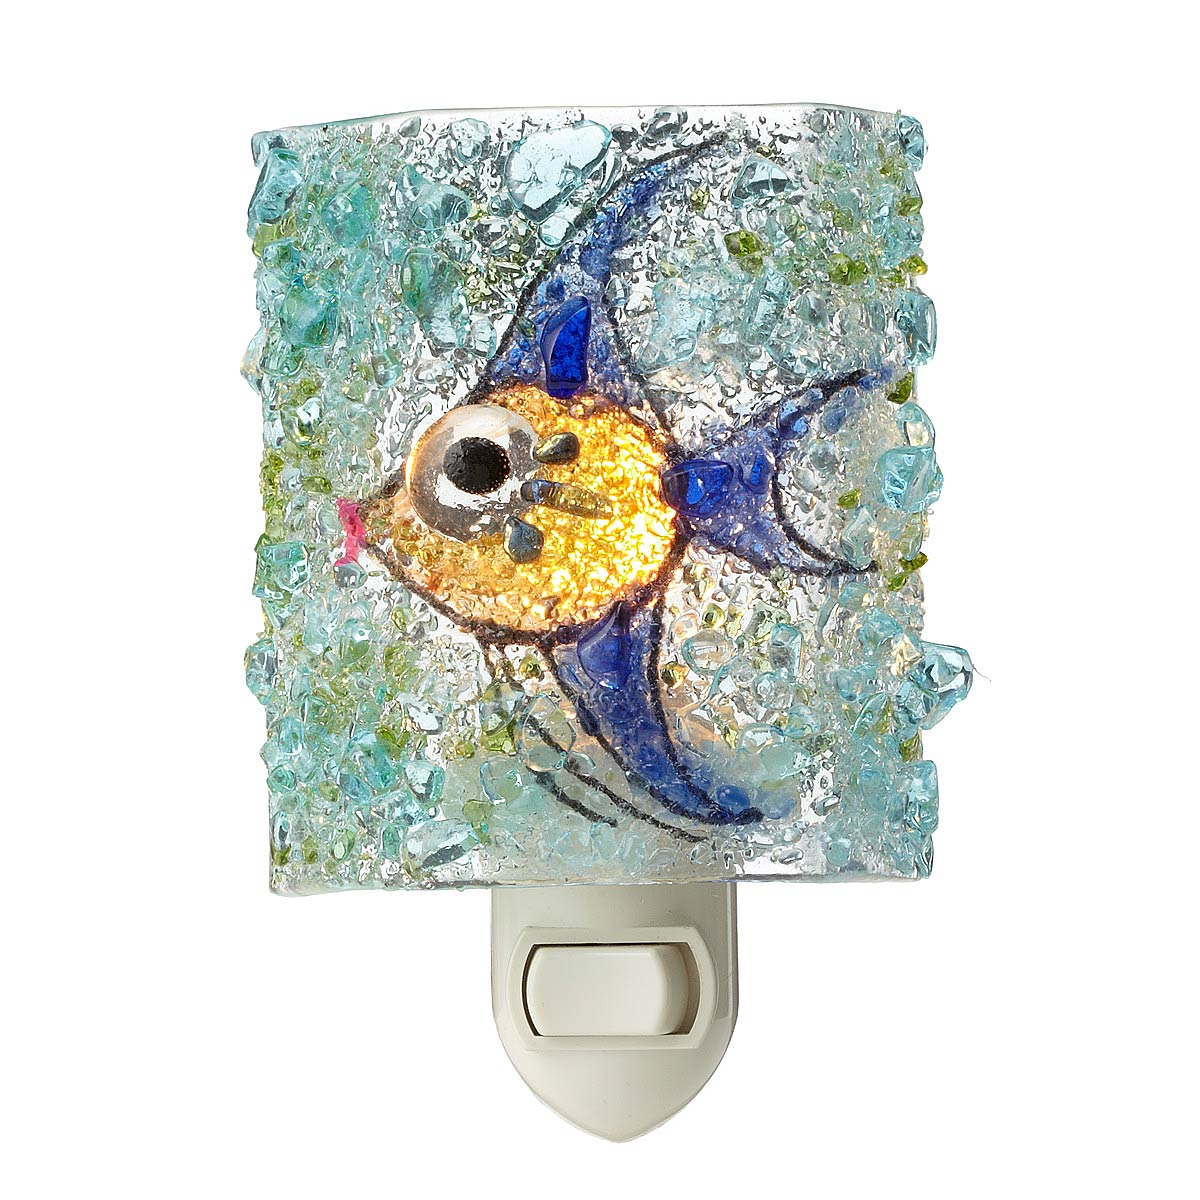 Bathroom Night Light recycled glass angel fish night light | children bedroom, beach